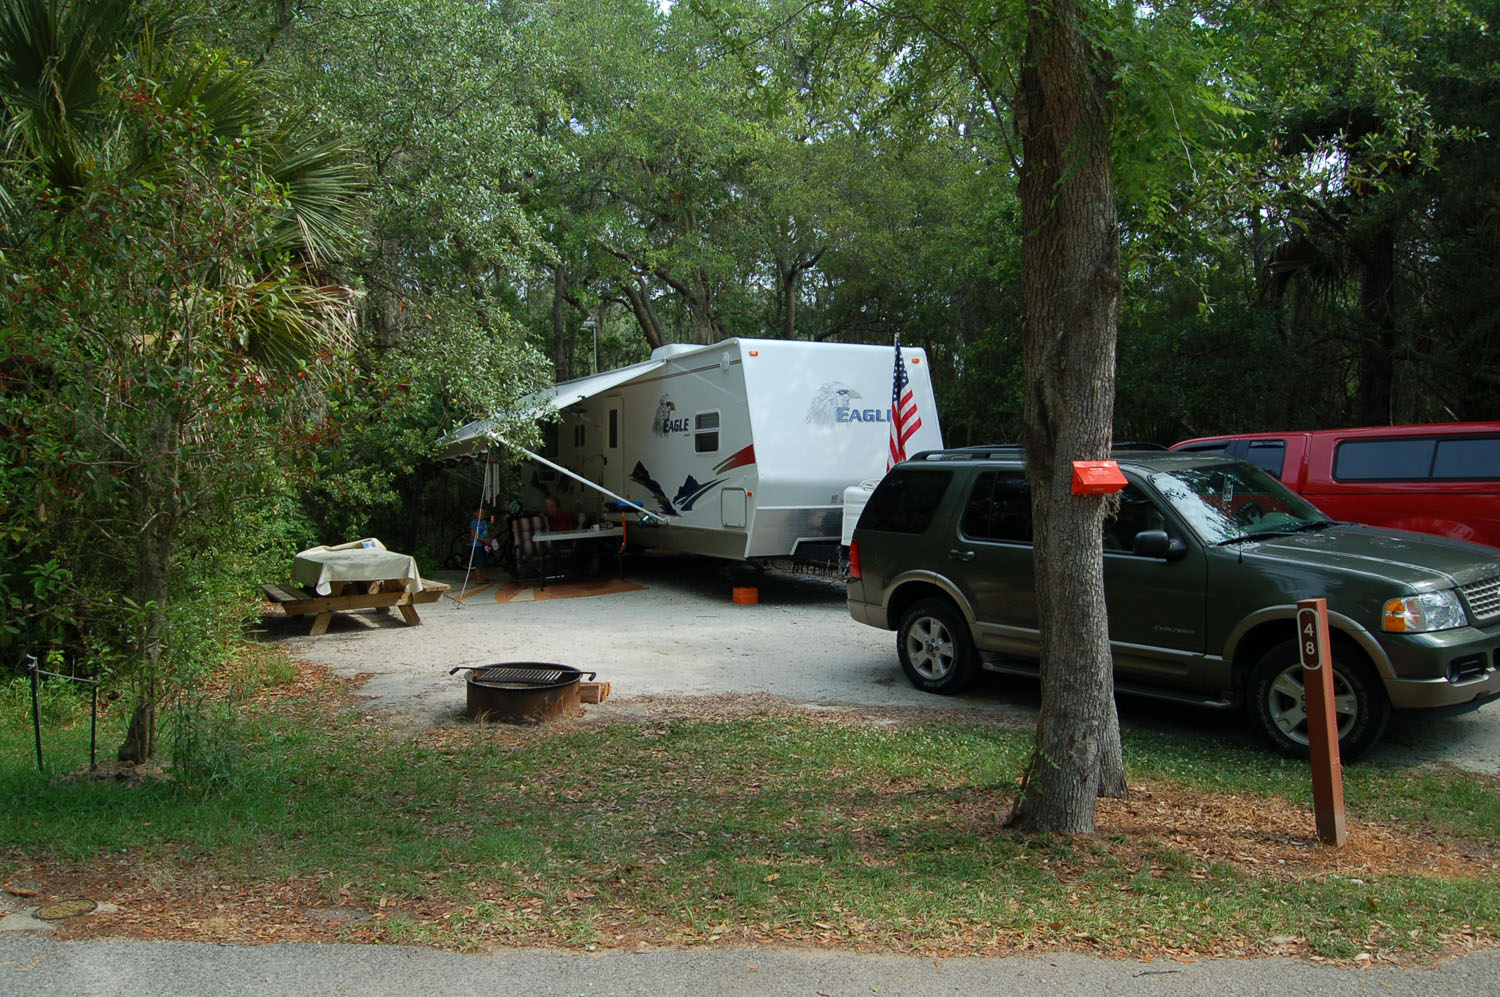 Image of campsite #48 at the Campground at James Island County Park